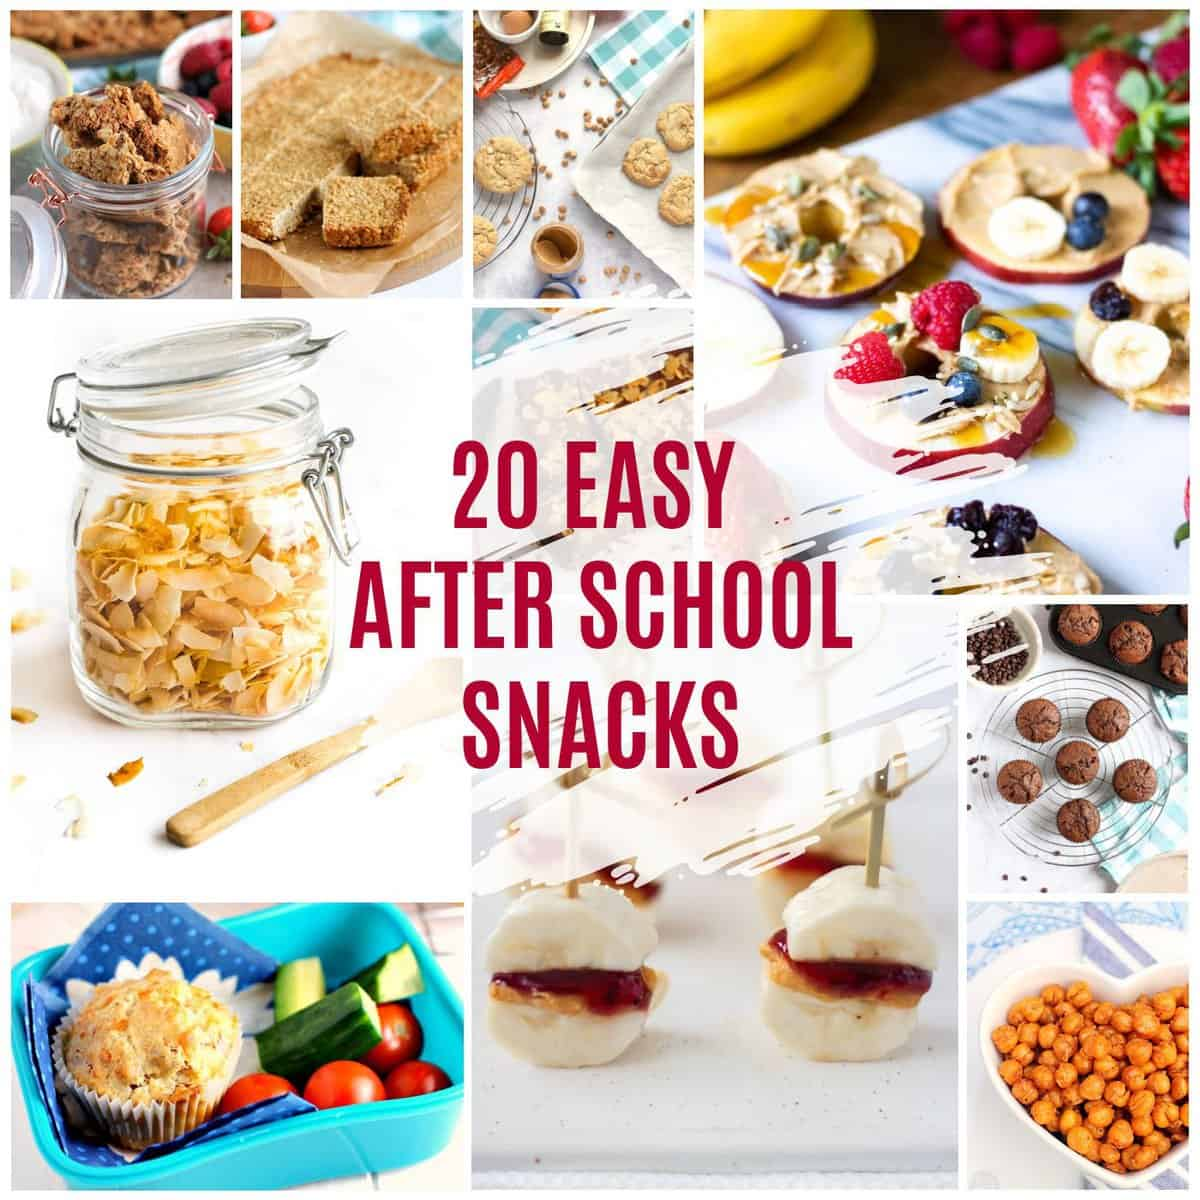 After school snacks collage